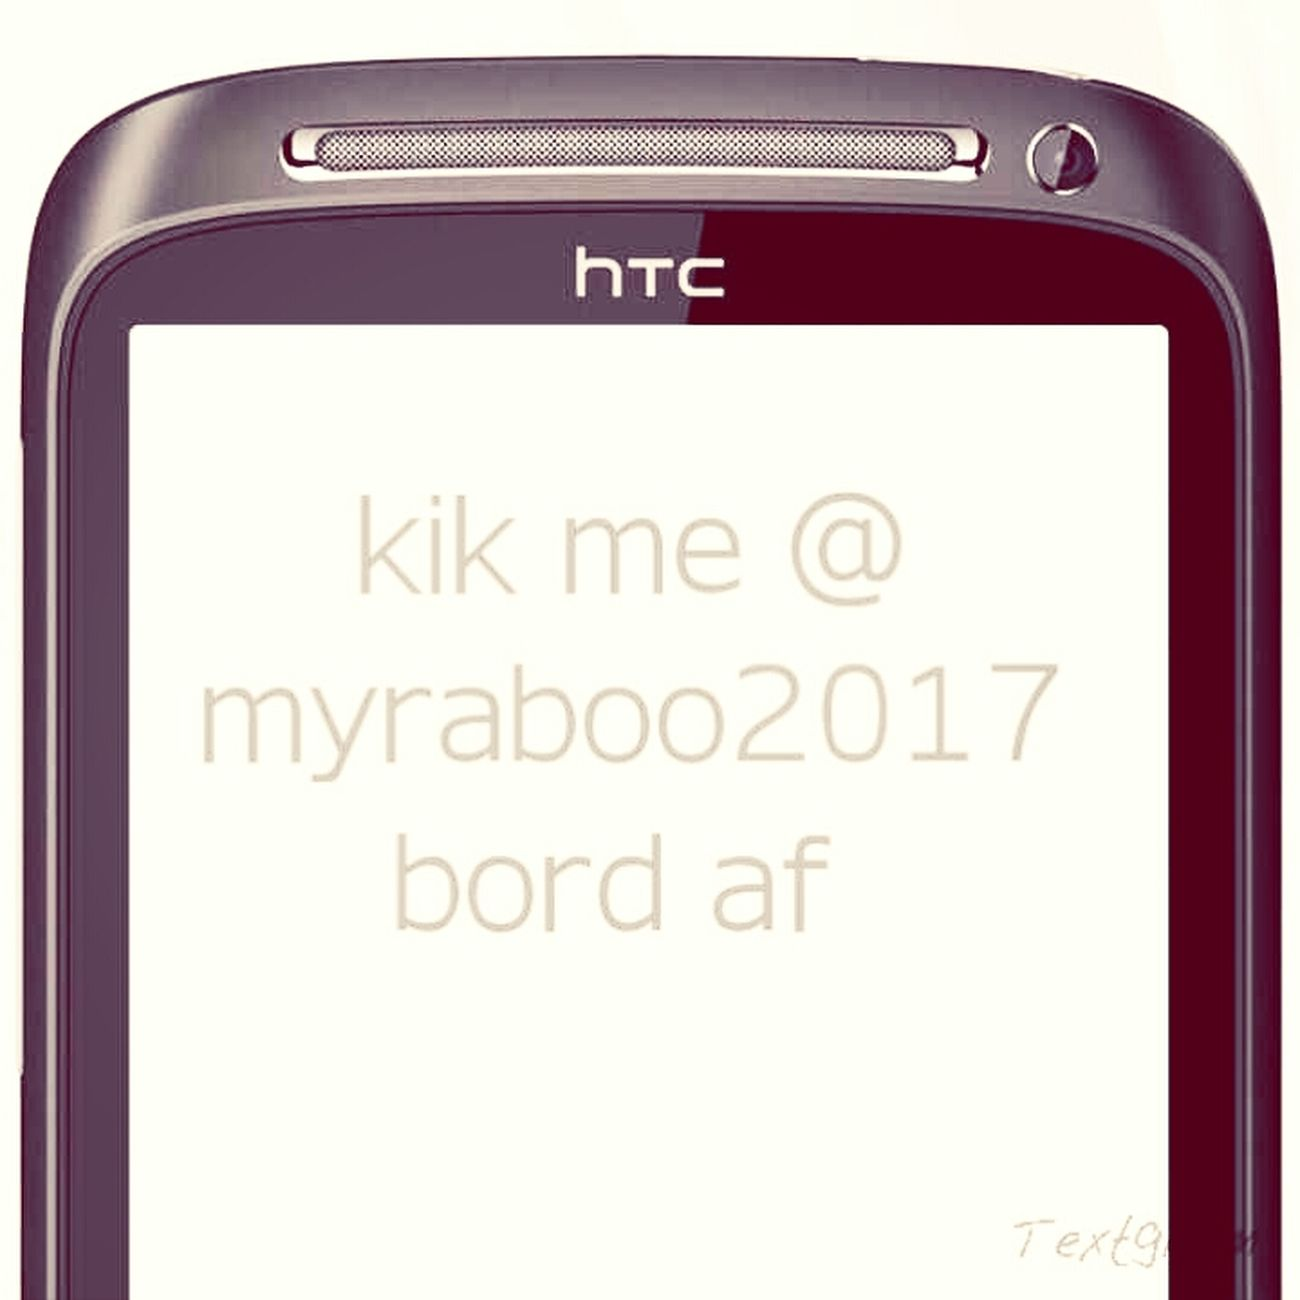 Mee Kik Names Somebody Hmu On Kik @myraboo2017 Im Bord Asf Kik Name Below If U Bord Hmu With A Good Convo